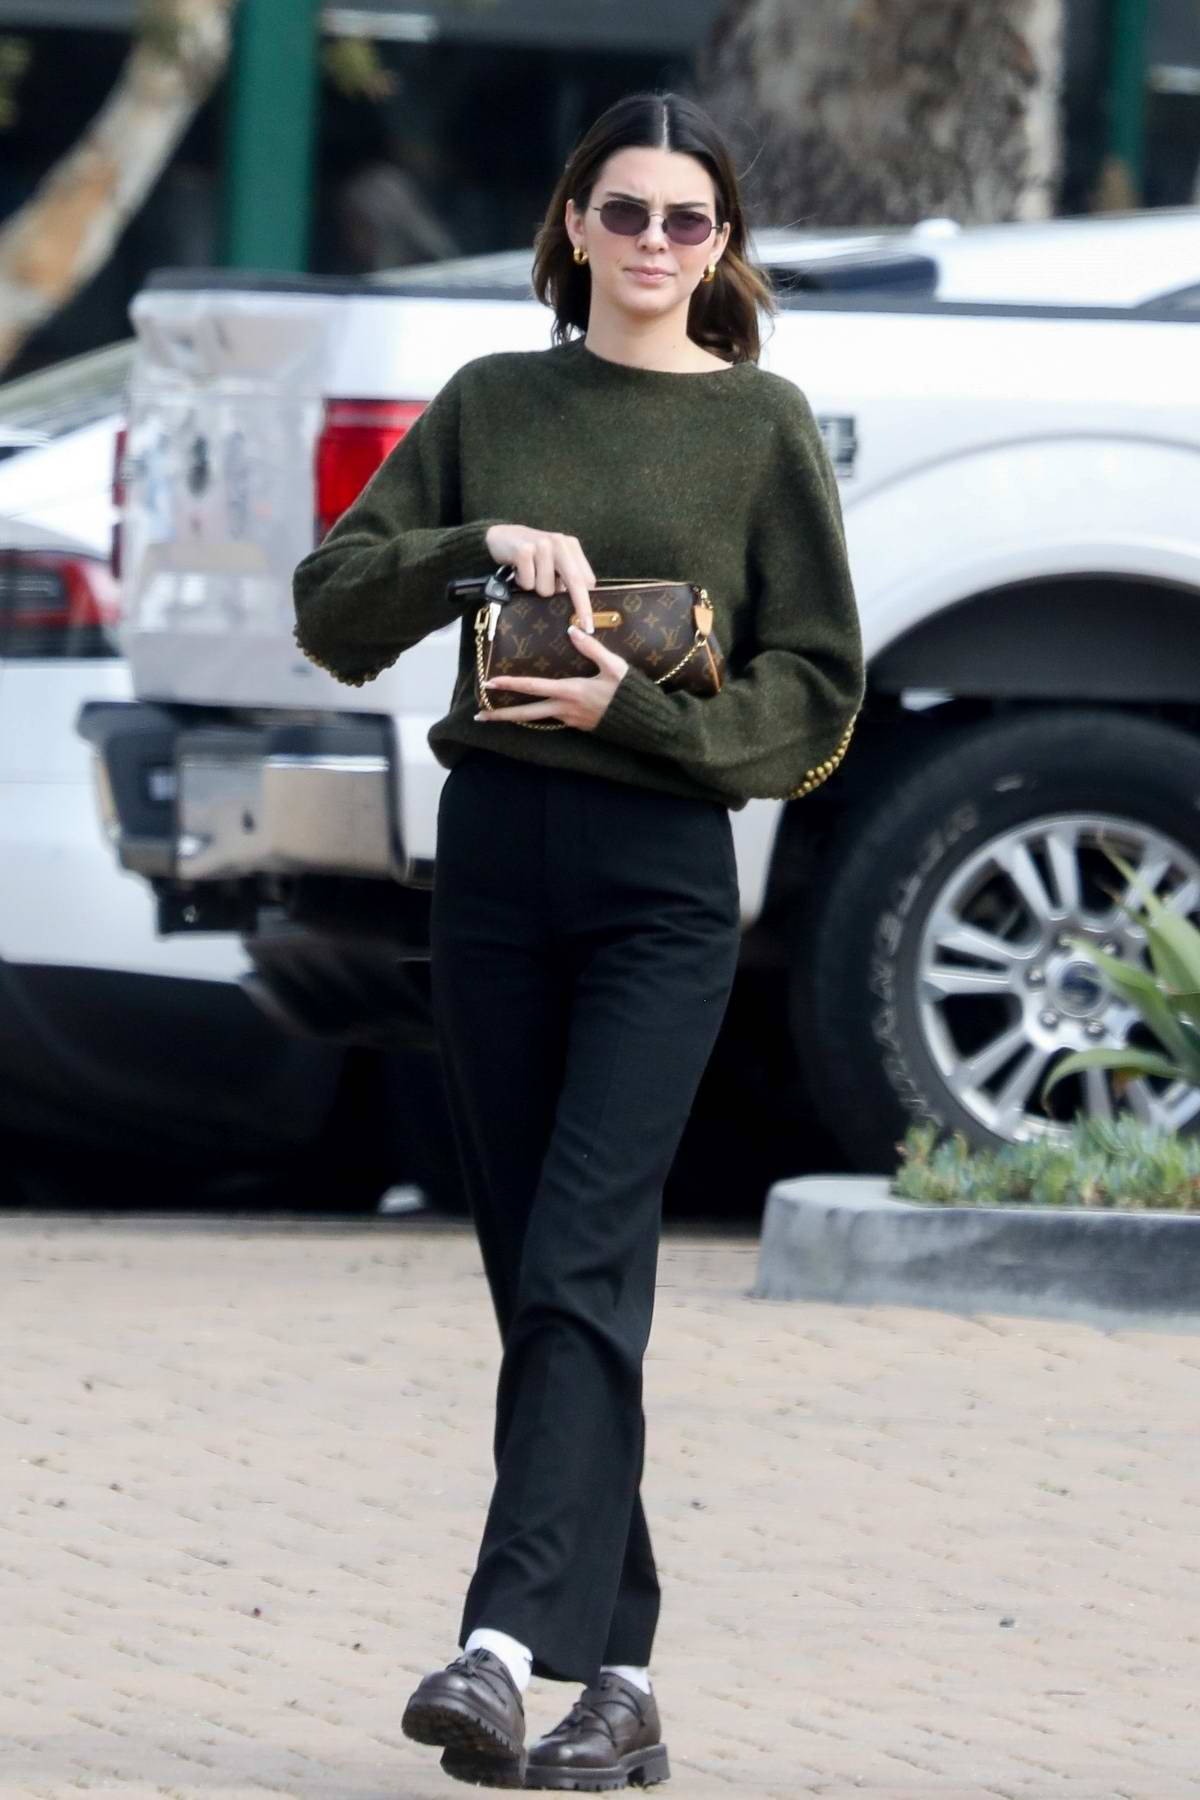 Kendall Jenner meets up for lunch with Caitlyn jenner in Malibu, California